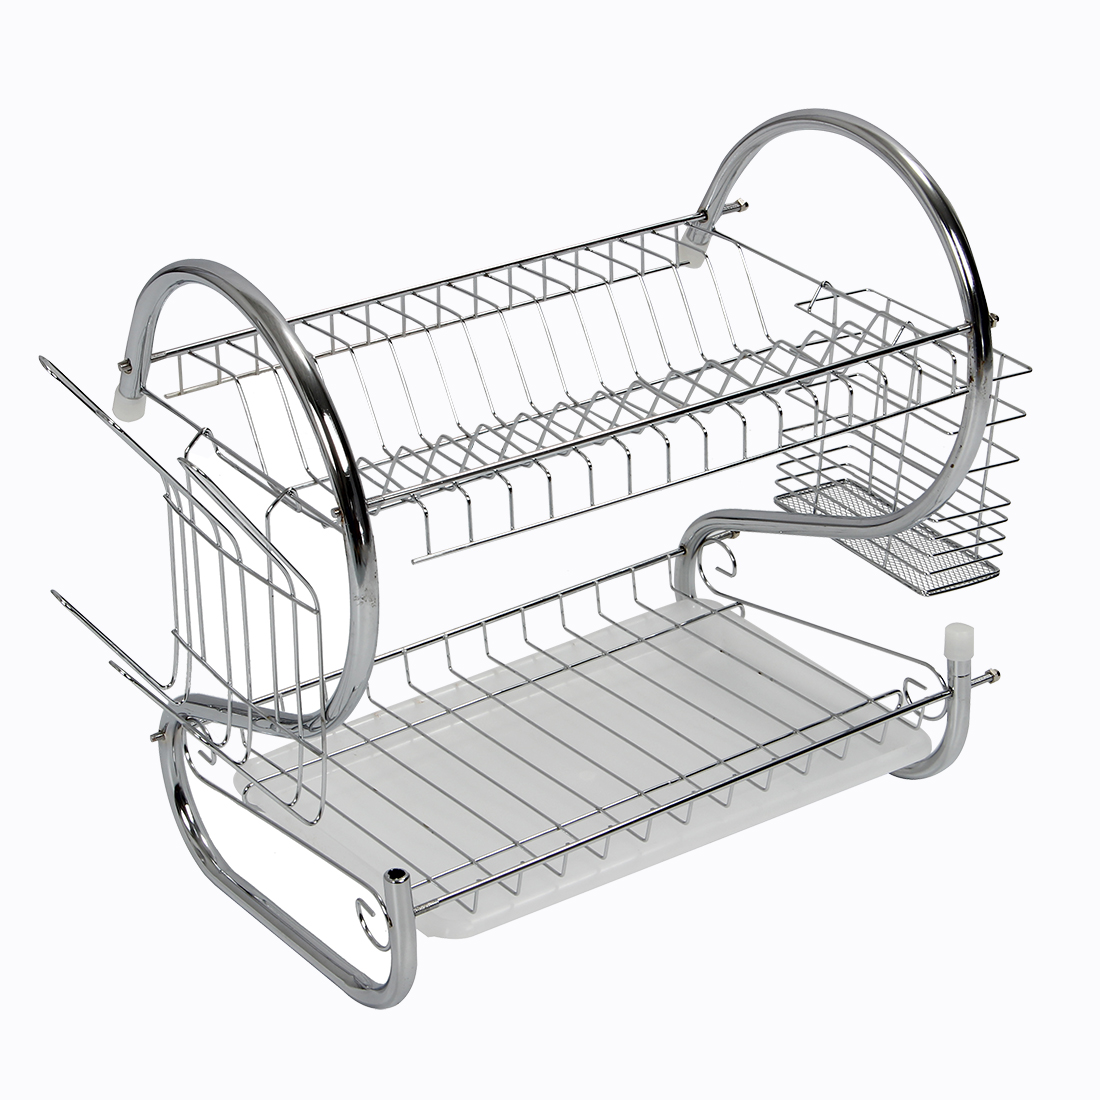 New 2 Tier Chrome Plate Dish Cutlery Cup Drainer Rack Drip